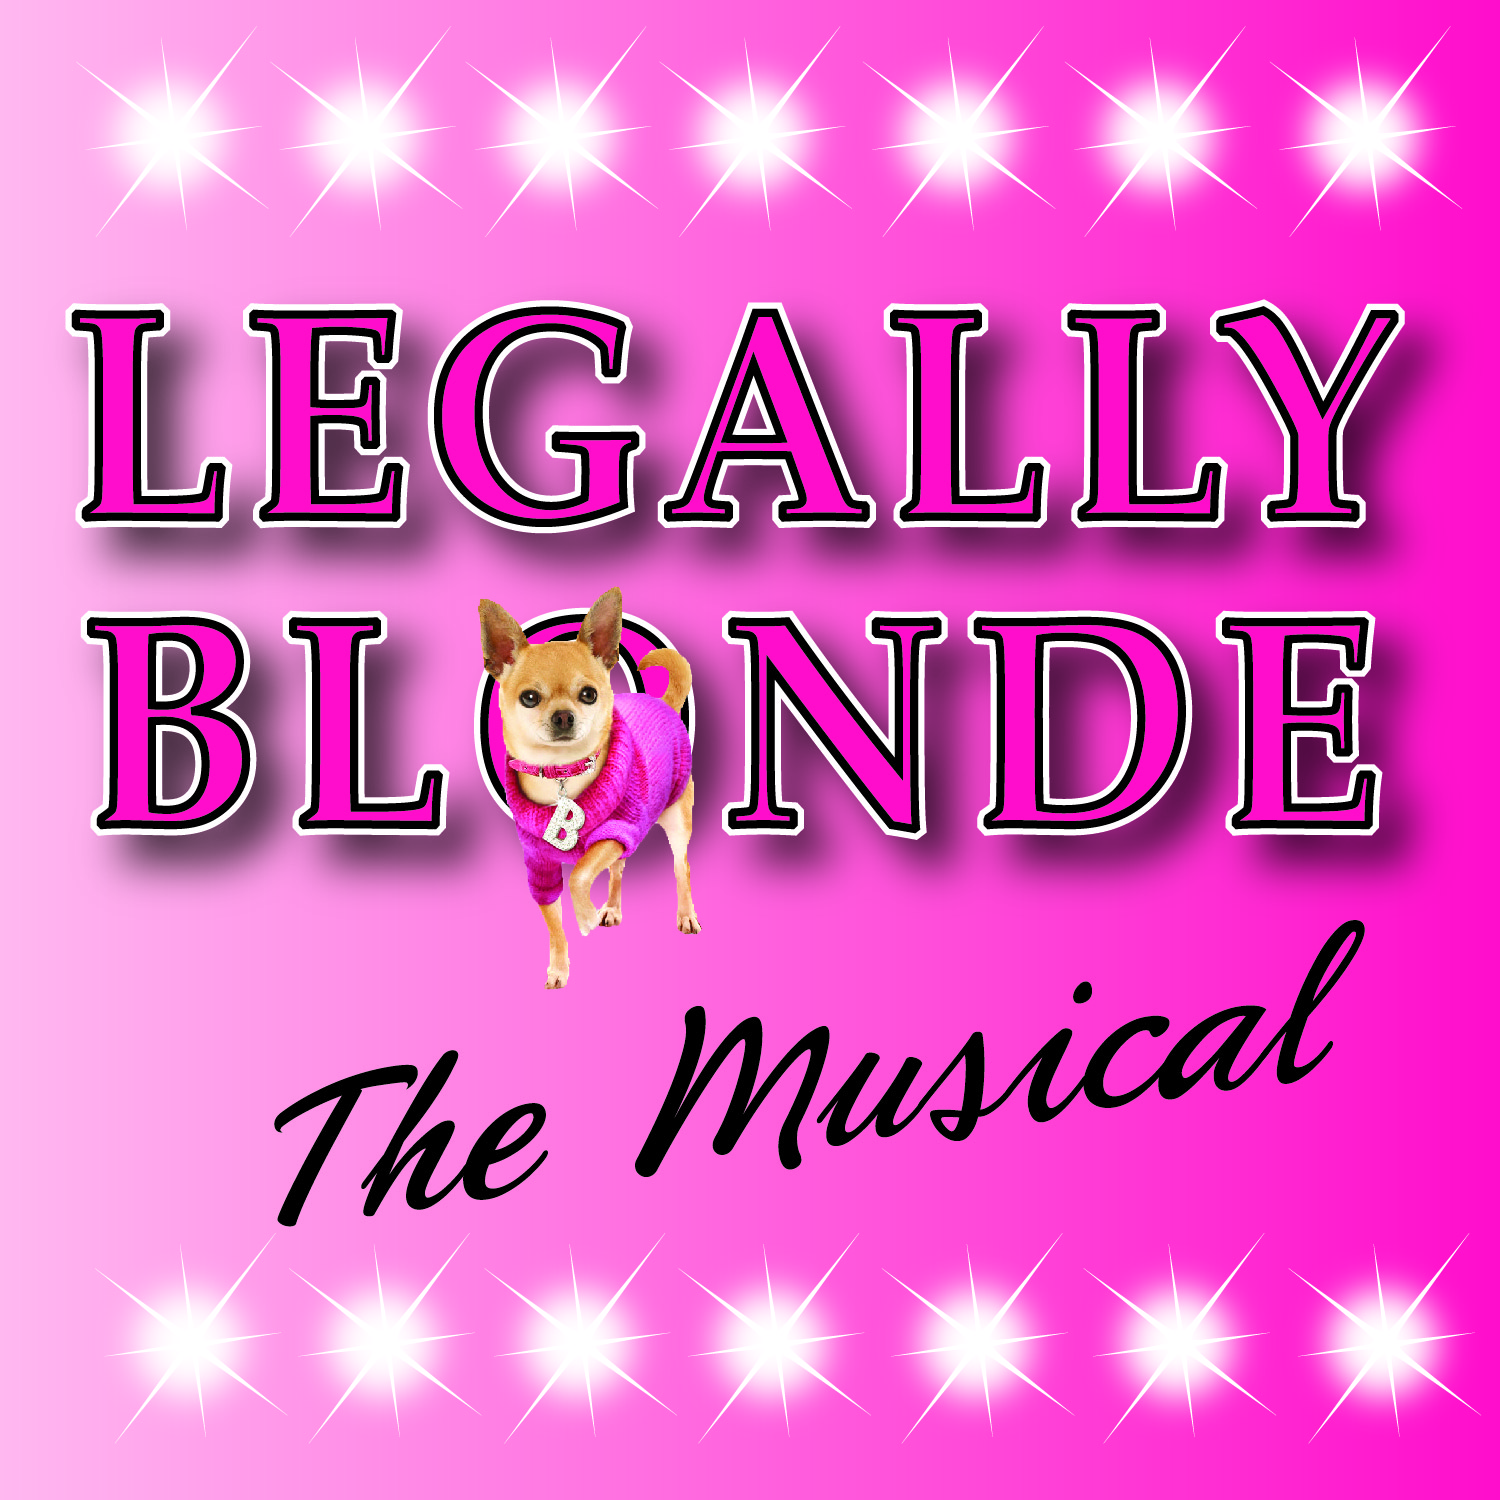 Legally Blonde Logo thumbnail-01